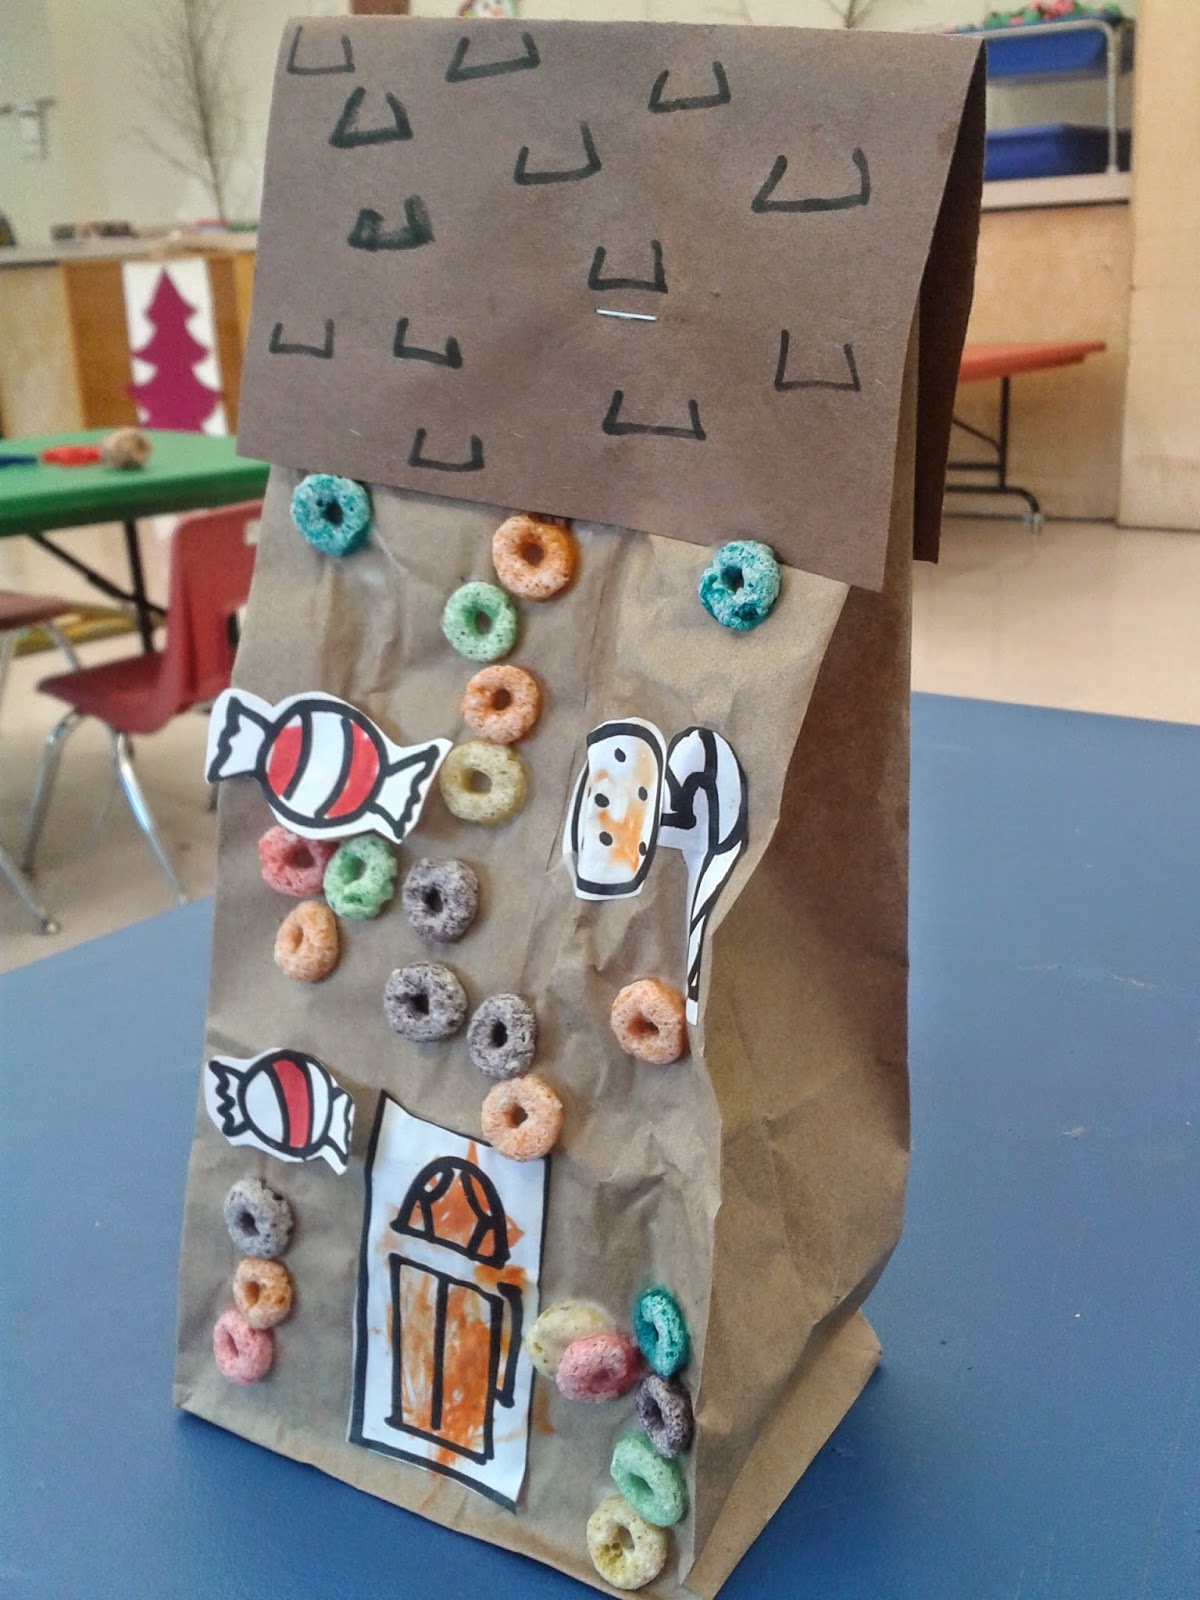 Classroom Freebies Too Paper Bag Gingerbread Houses With